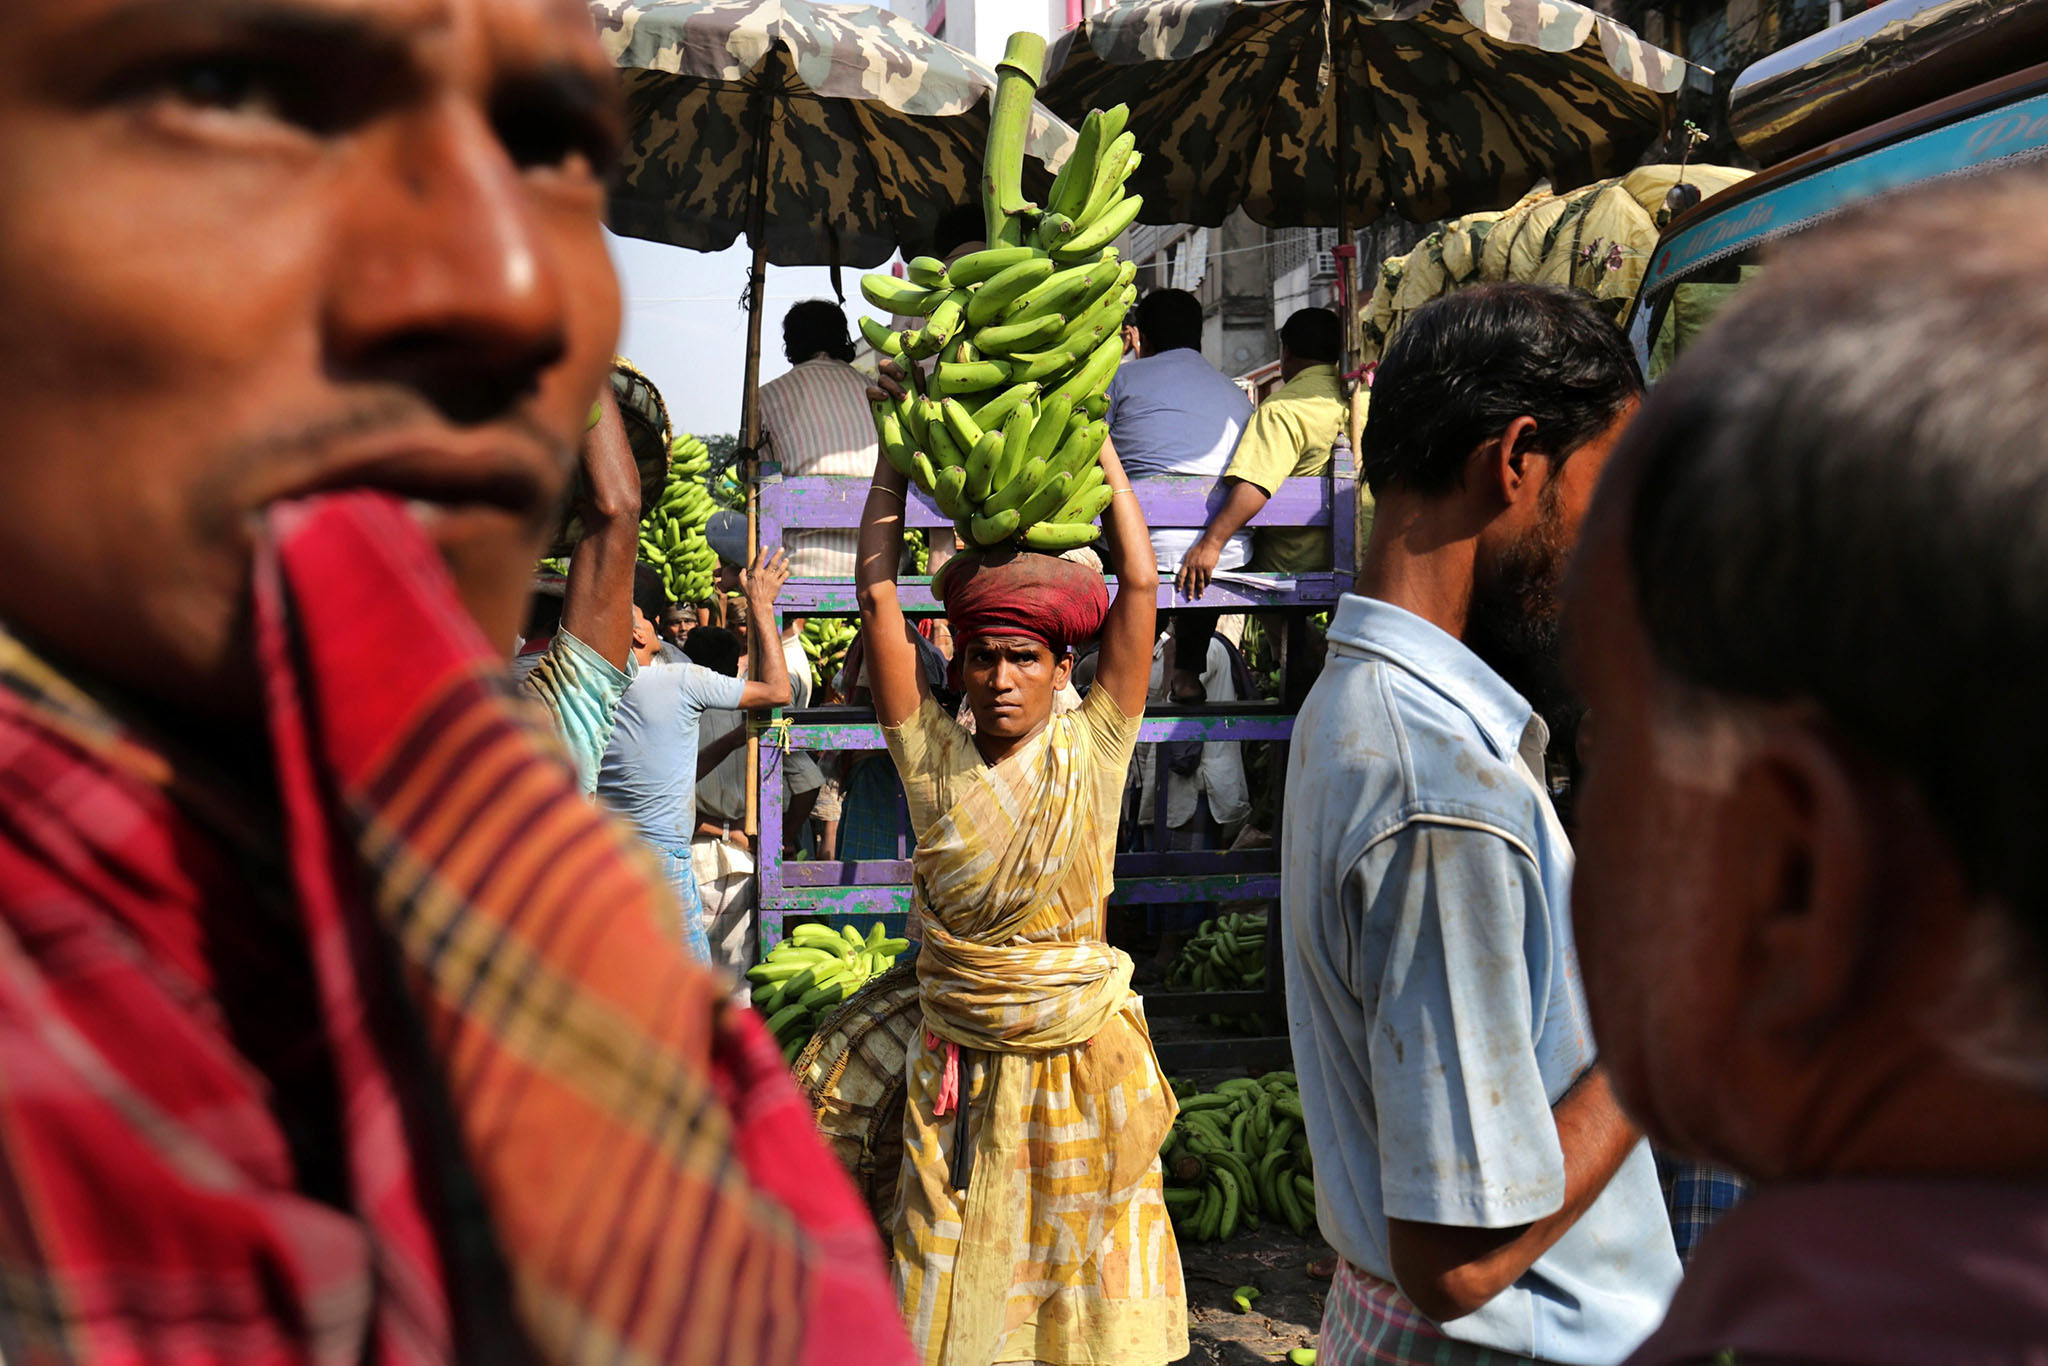 Indian laborers handle banana branches at the largest and busiest wholesale fruit market in Calcutta, eastern India, 16 November 2016. Media reports state major wholesalers are facing troubles selling their stock of fresh fruits and vegetables as cash shortages continues to affect the market.  Indian Prime Minister Narendra Modi announced the elimination of the 500 and 1,000 rupee bills (7.37 and 14.73 US dollars, respectively), hours before the measure took effect at midnight 08 November, for the purpose of fighting against 'black money' (hidden assets) and corruption in the country. The decision sparked some protests, while storekeepers complained about dwindling sales because many citizens lack the cash to buy the most basic products, as lines get longer at ATMs and banks.  EPA/PIYAL ADHIKARY